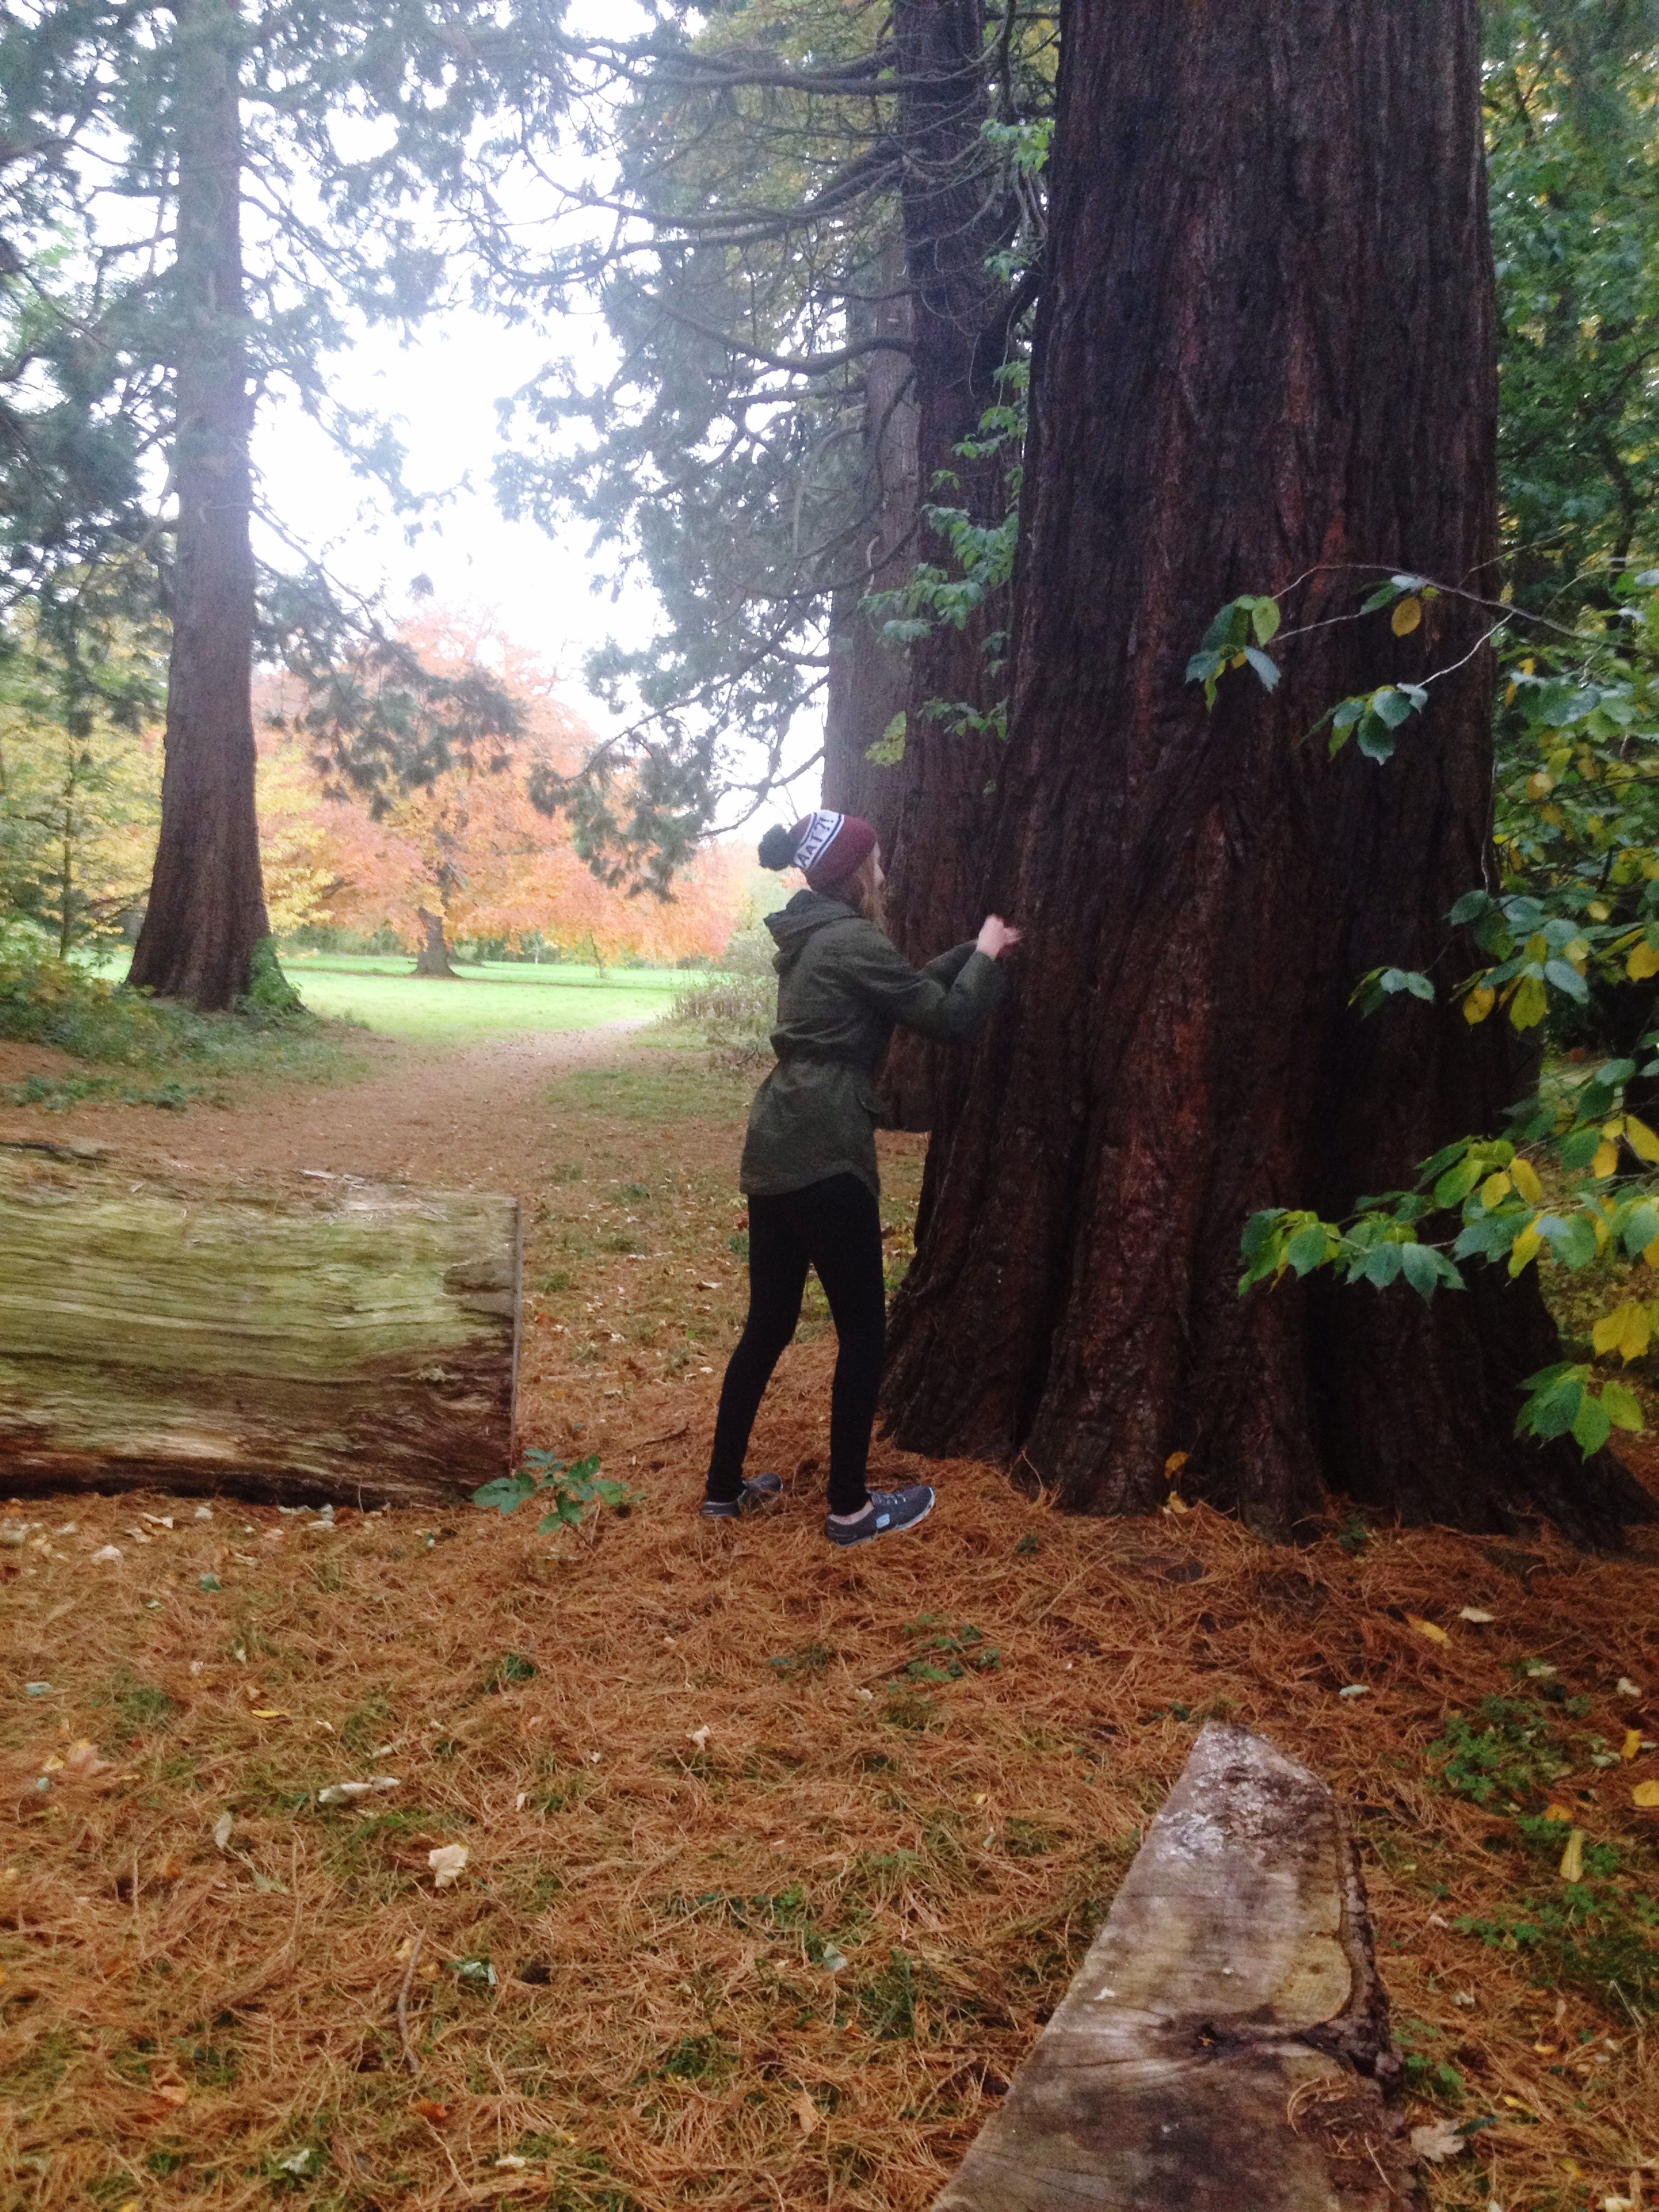 Me Punching a tree- redwood trees have soft spongy bark so when you punch it , it doesn't hurt Autumn Redwoods Scotland Walking Around Walk Nature ThatsMe Trees Colors